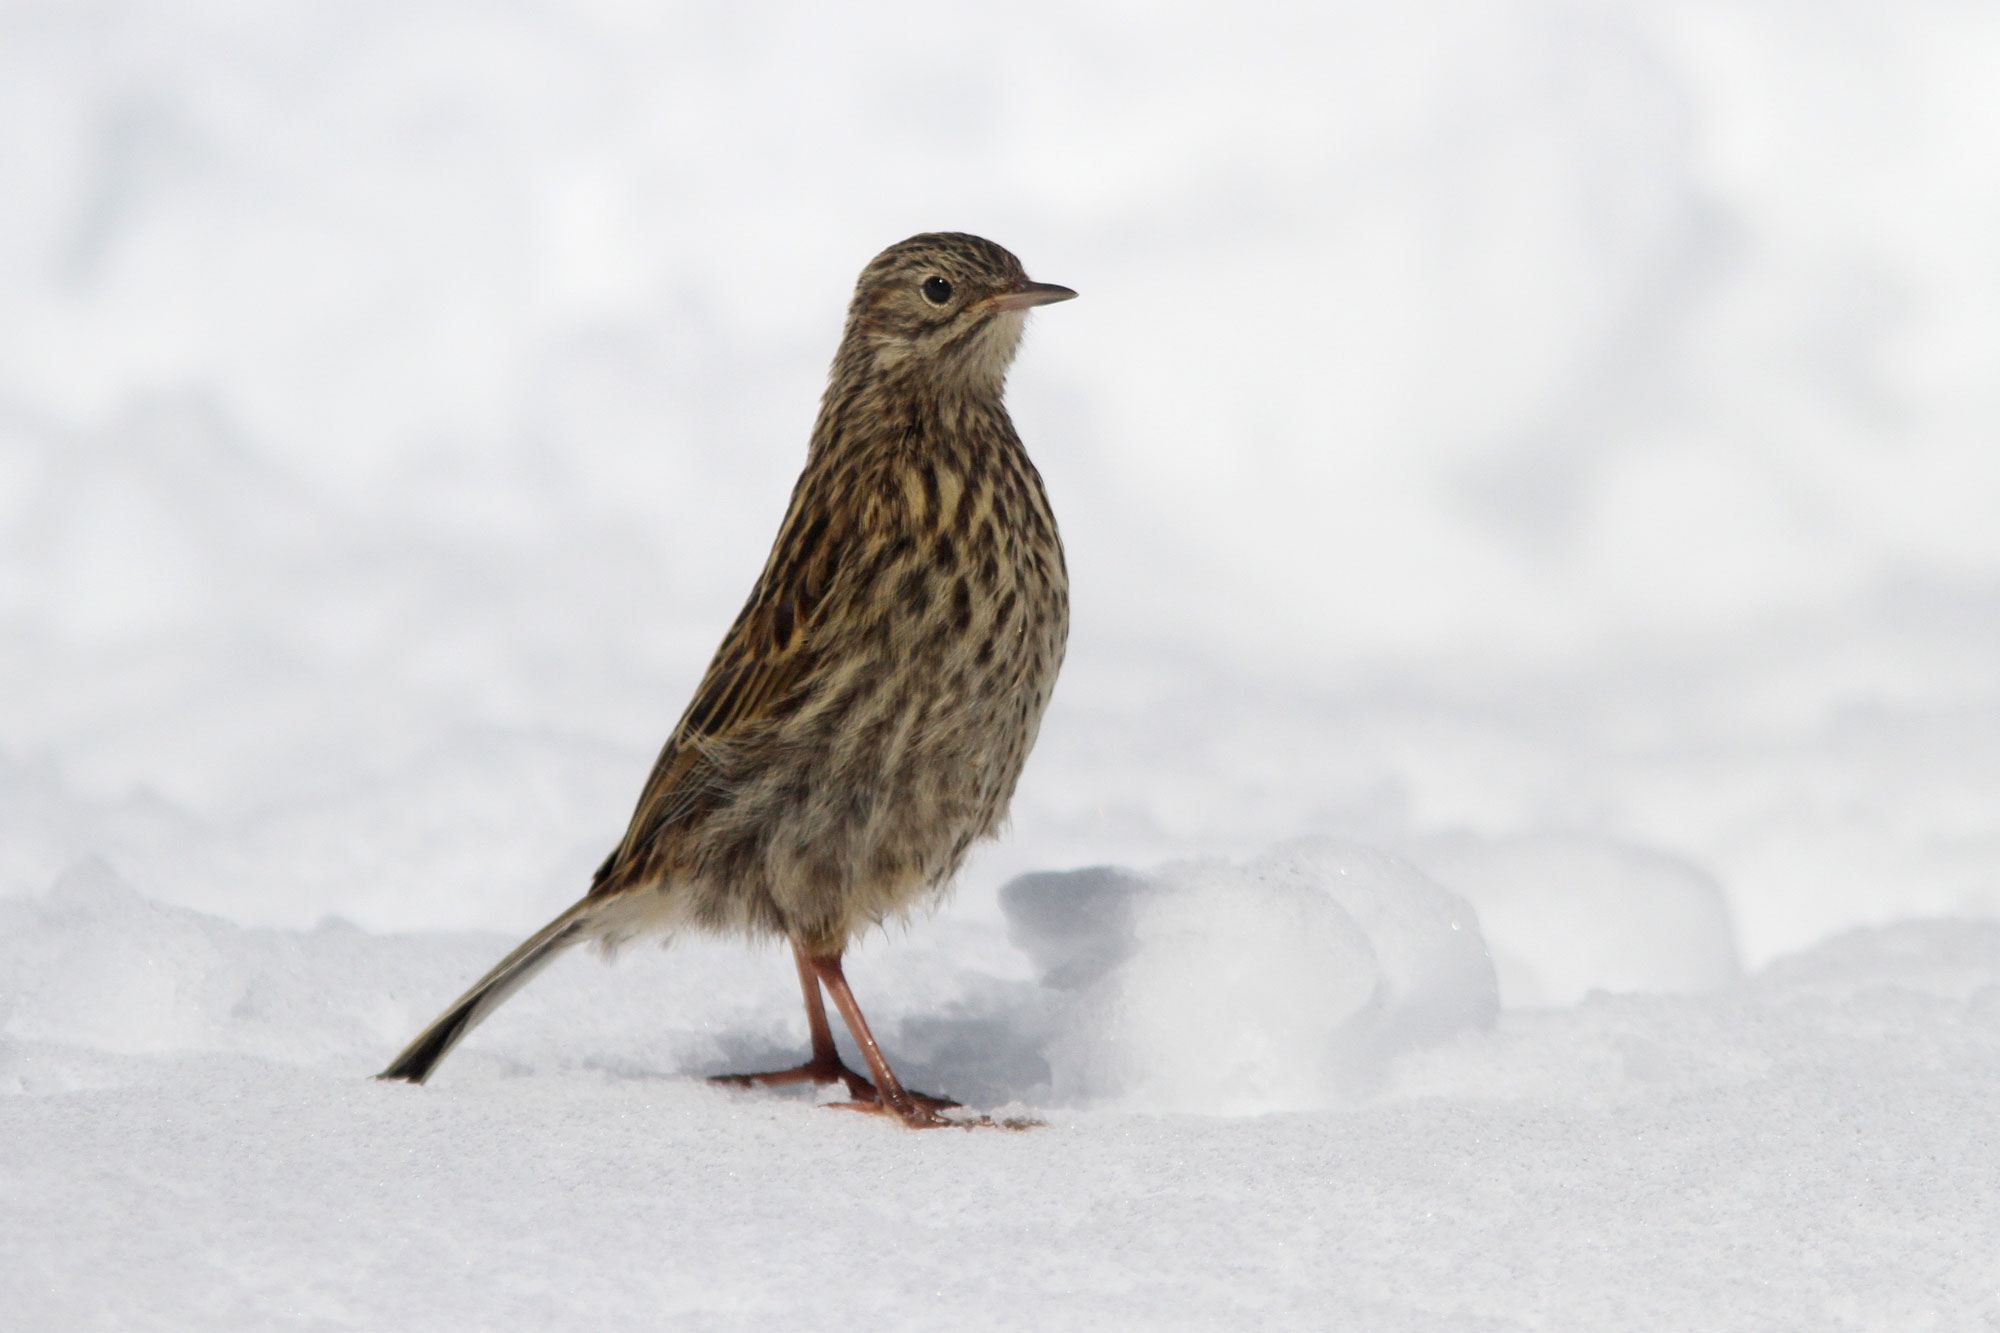 The South Georgia Pipit is one of the prize endemic species you might see on the South Georgia to Cape Verde expedition. Photo: Noah Strycker